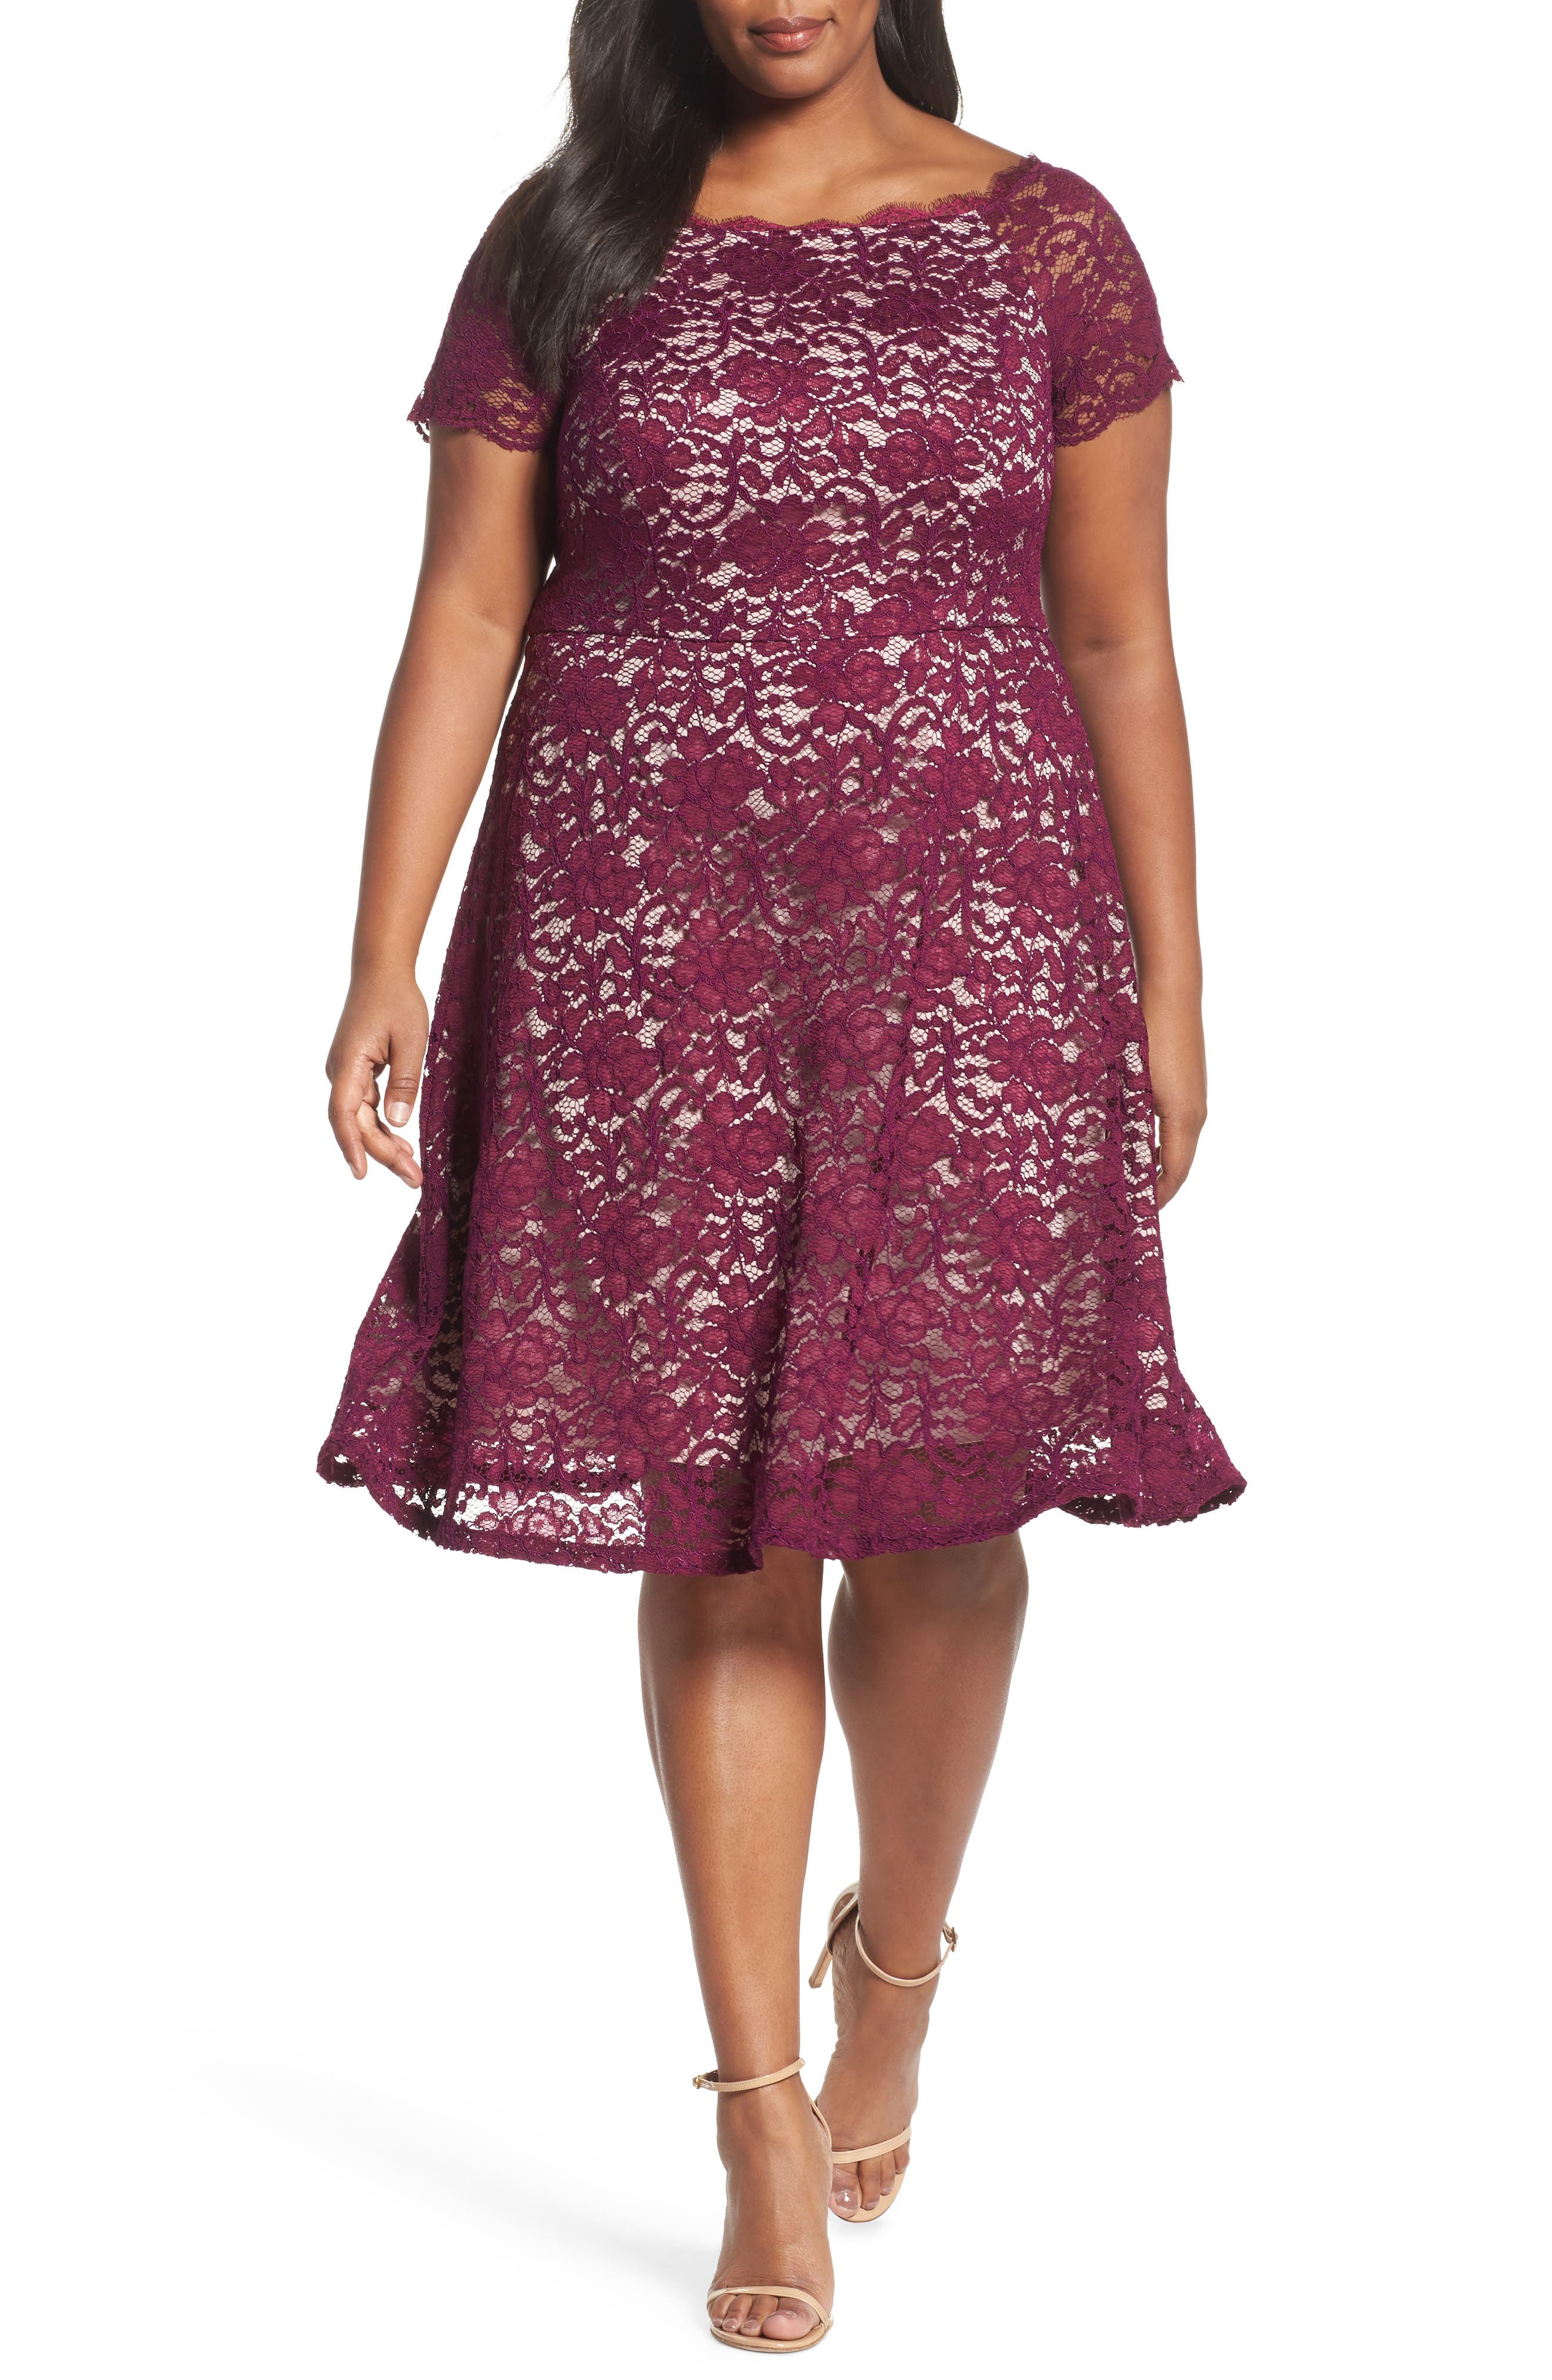 Adrianna Papell Fit & Flare Lace Dress (Plus Size)